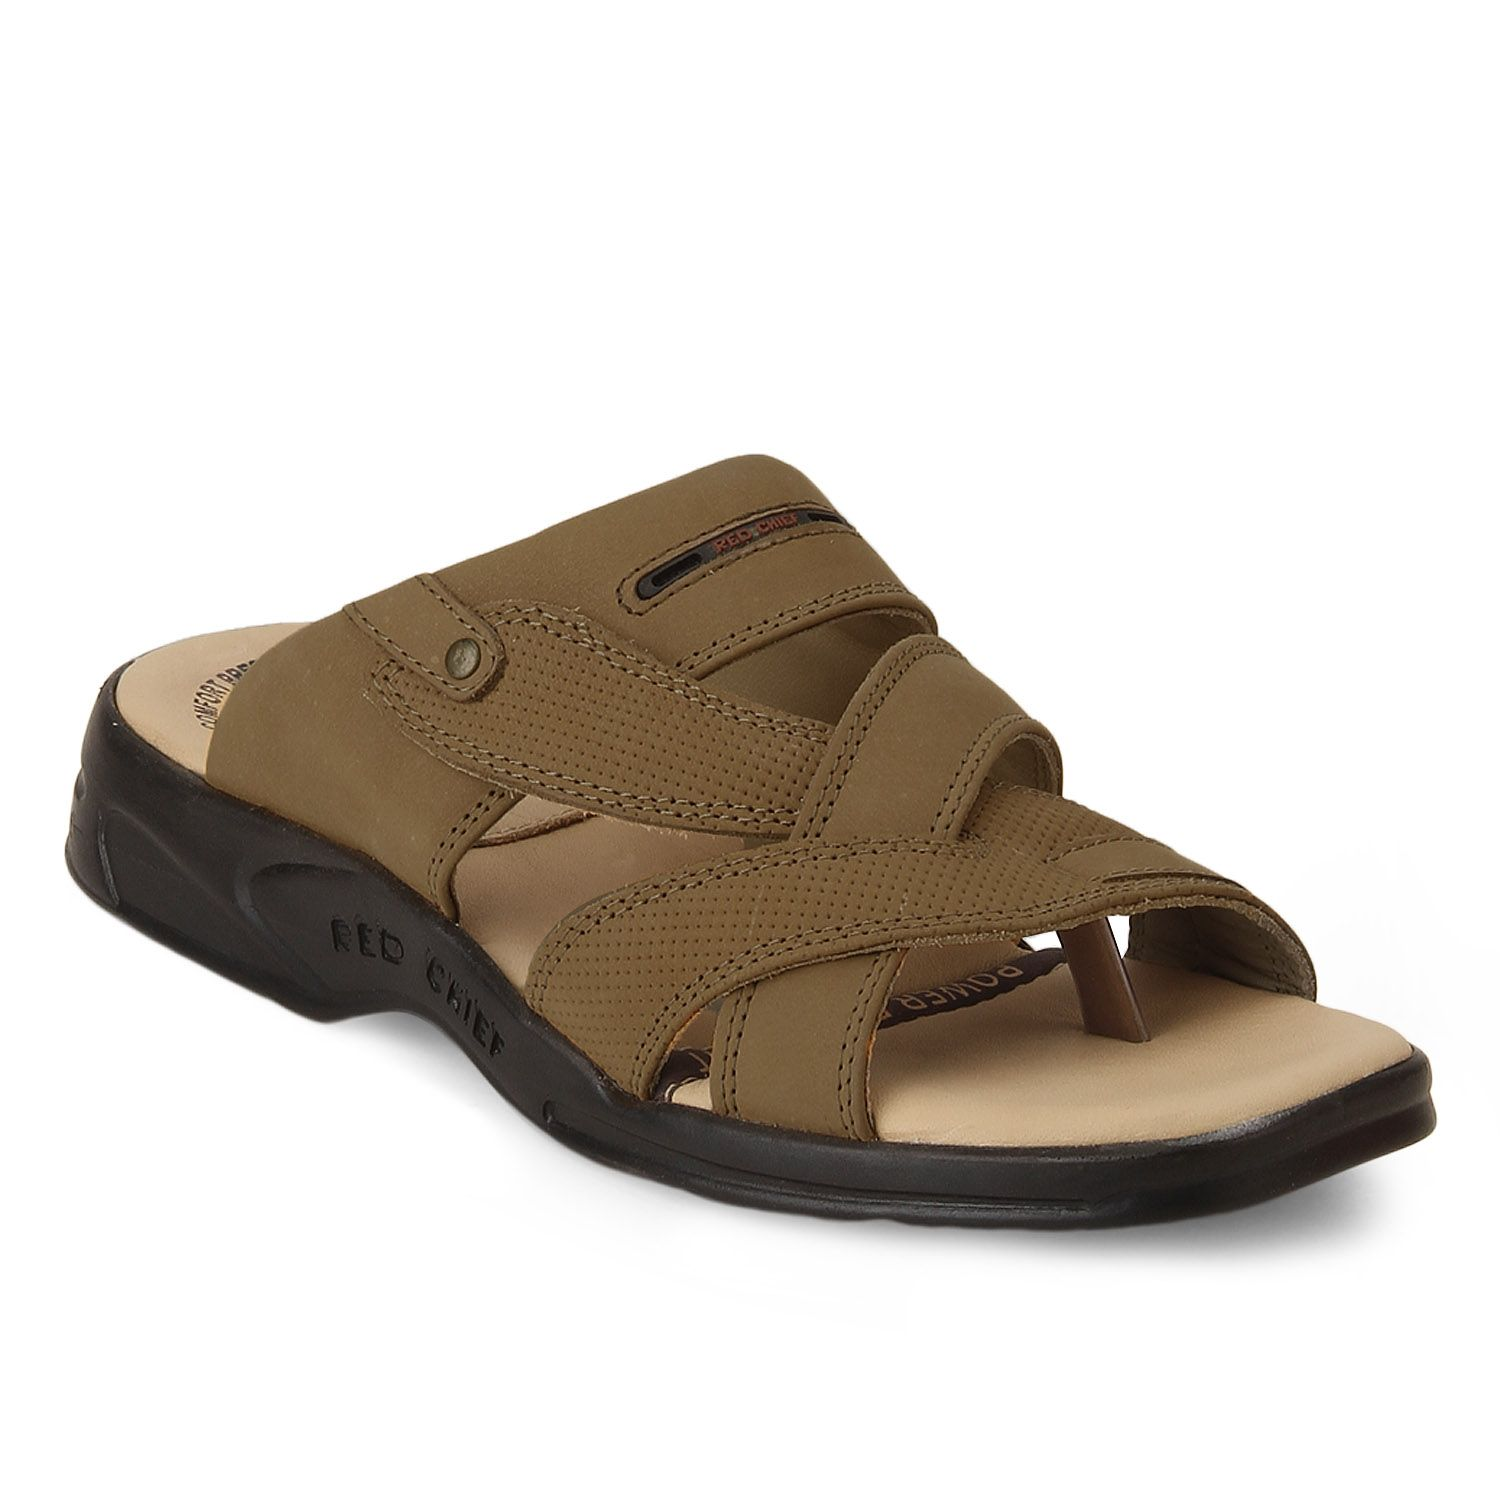 Accentuate your look with this pair of Rust men's sandals from PowerFlex by  Red Chief.